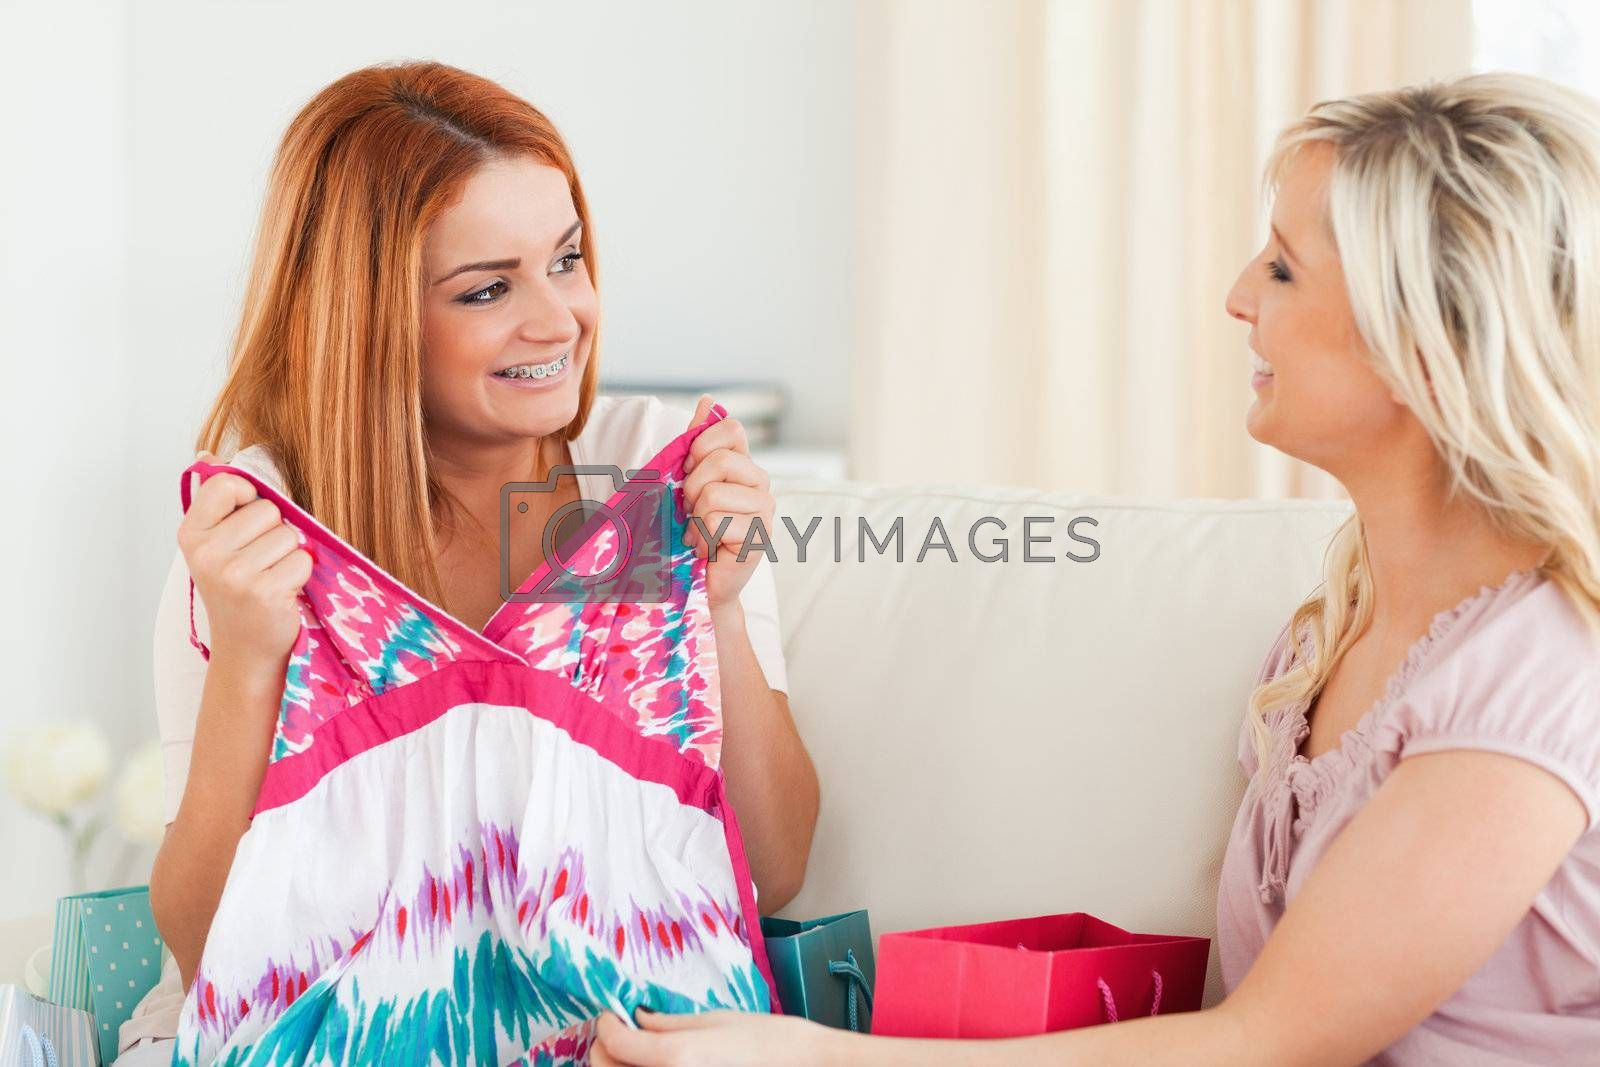 Charming Women with shopping bags in a living room